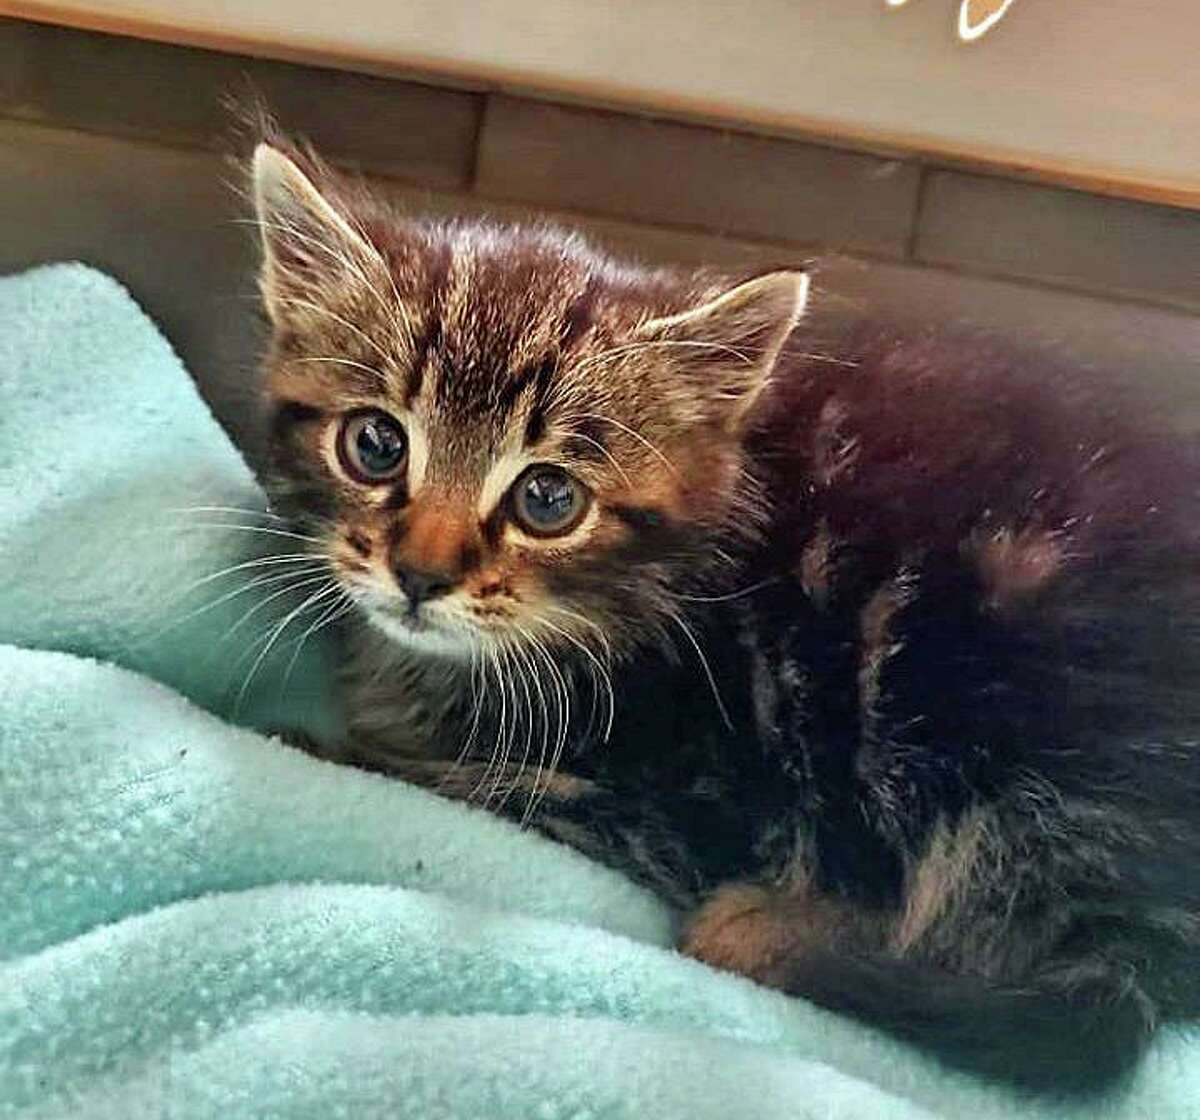 The surviving kitten - a male - was taken to the animal control facility in good health before being transferred to a local animal rescue. The kitten was placed in a new home the same day, police said.